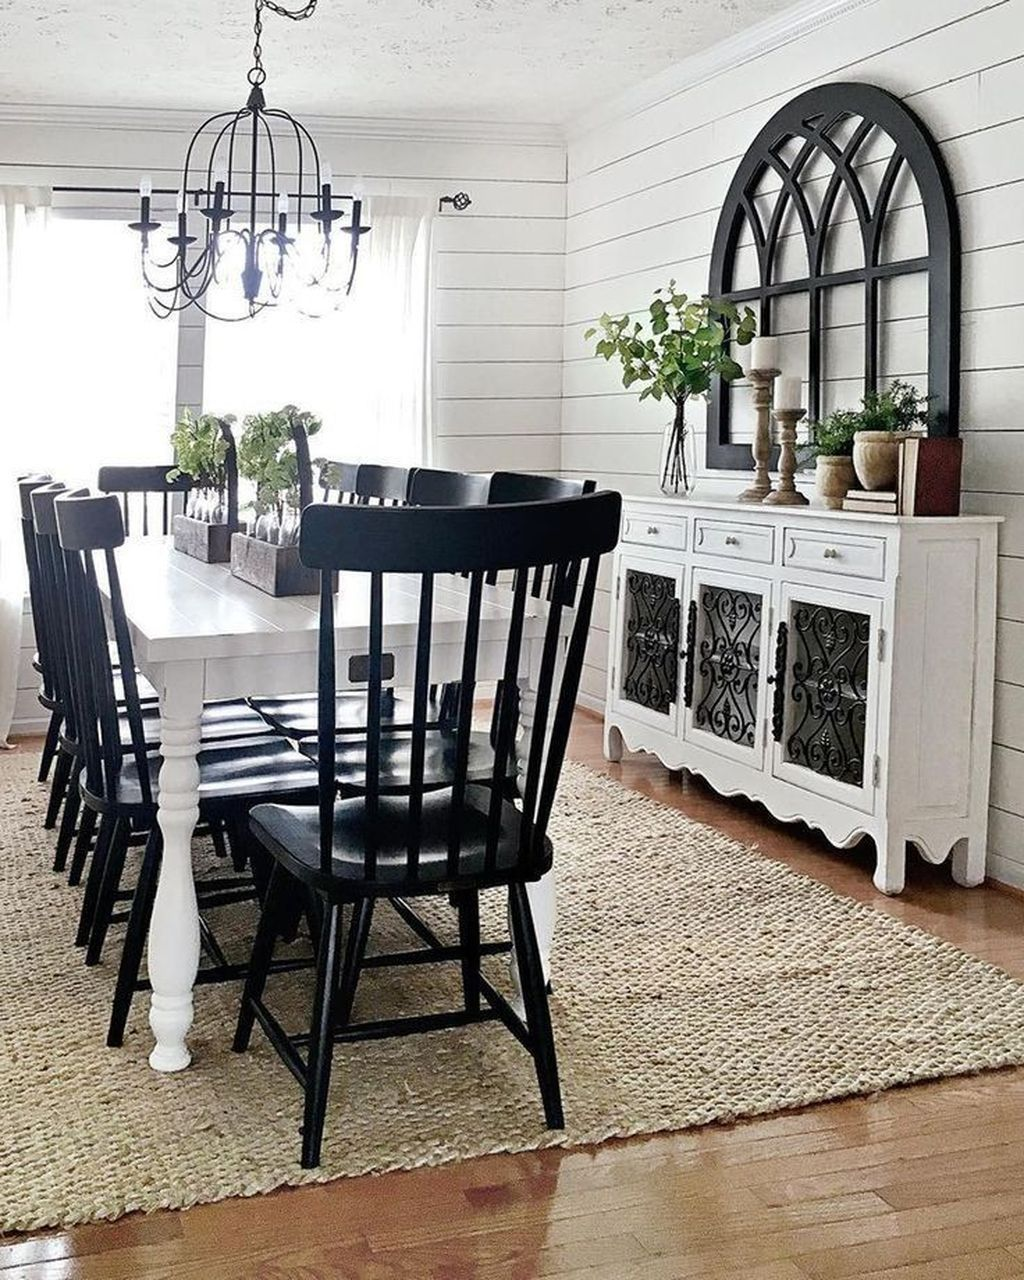 Best Pics Farmhouse Table And Chairs Ideas Building A Farmhouse Table Is In 2021 Modern Farmhouse Dining Room Farmhouse Style Dining Room Farmhouse Dining Rooms Decor